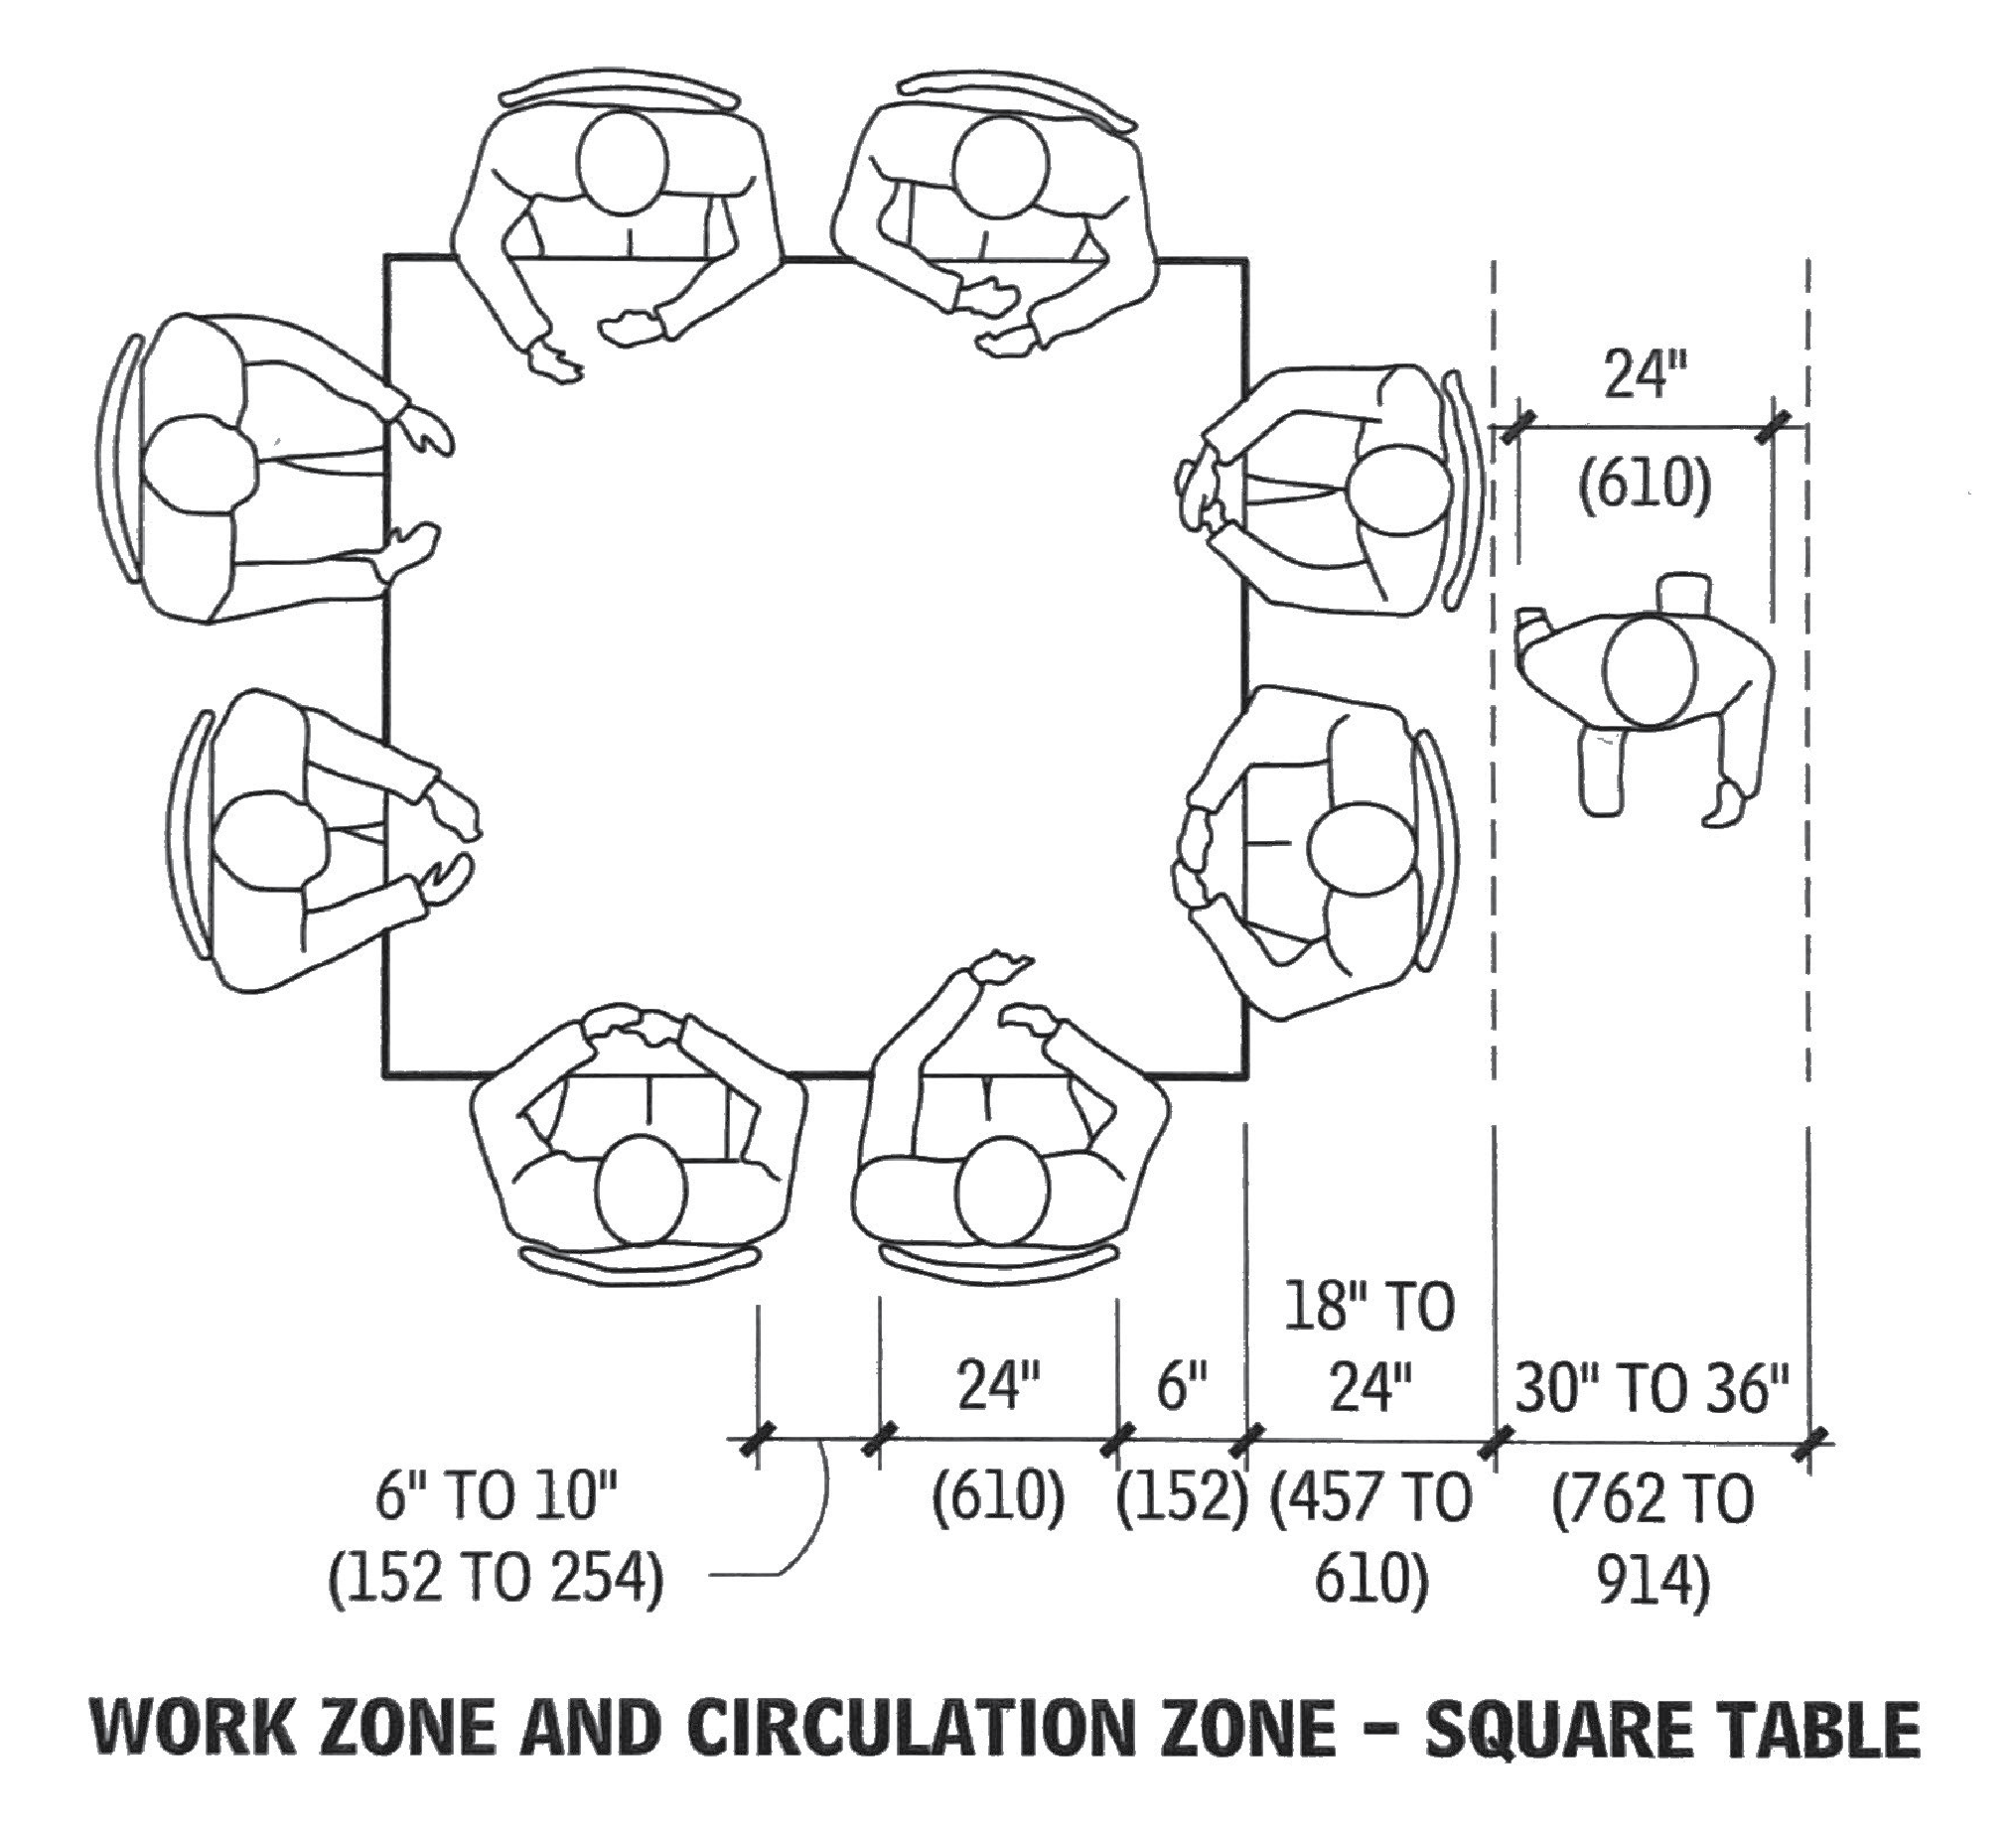 Previous understanding of what standard office meetings and circulation should be.